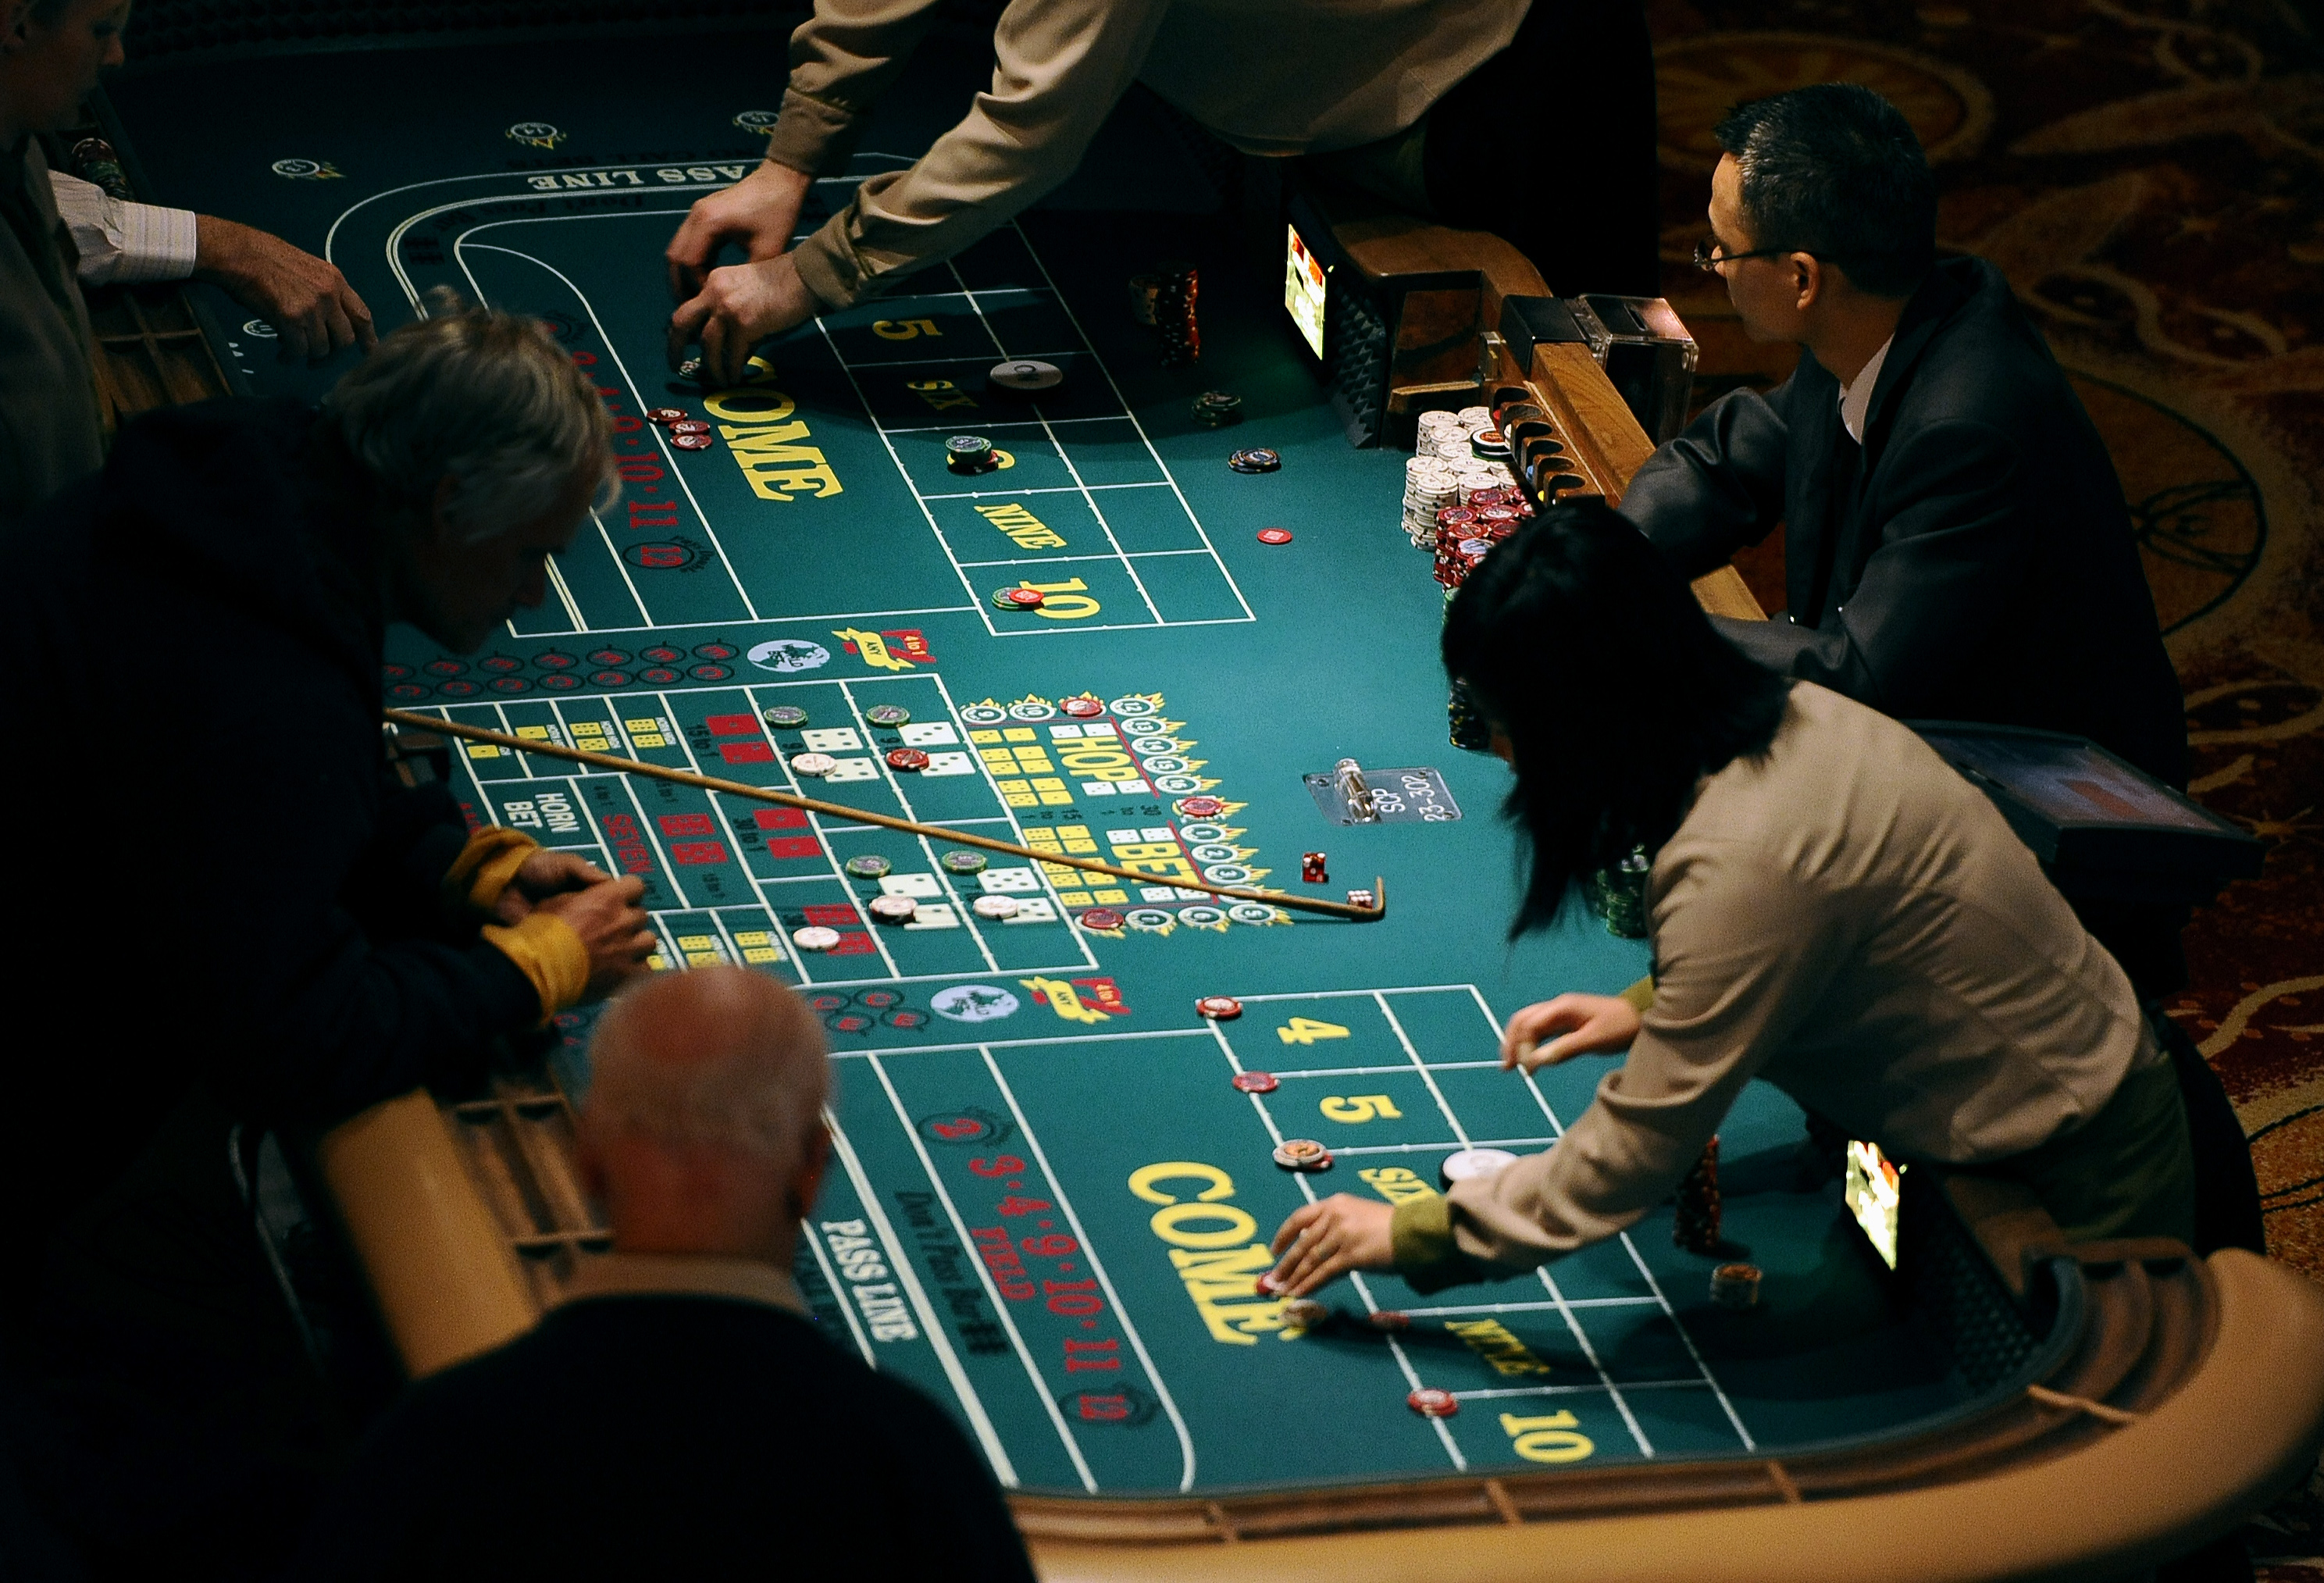 What does the green spot on a roulette table mean